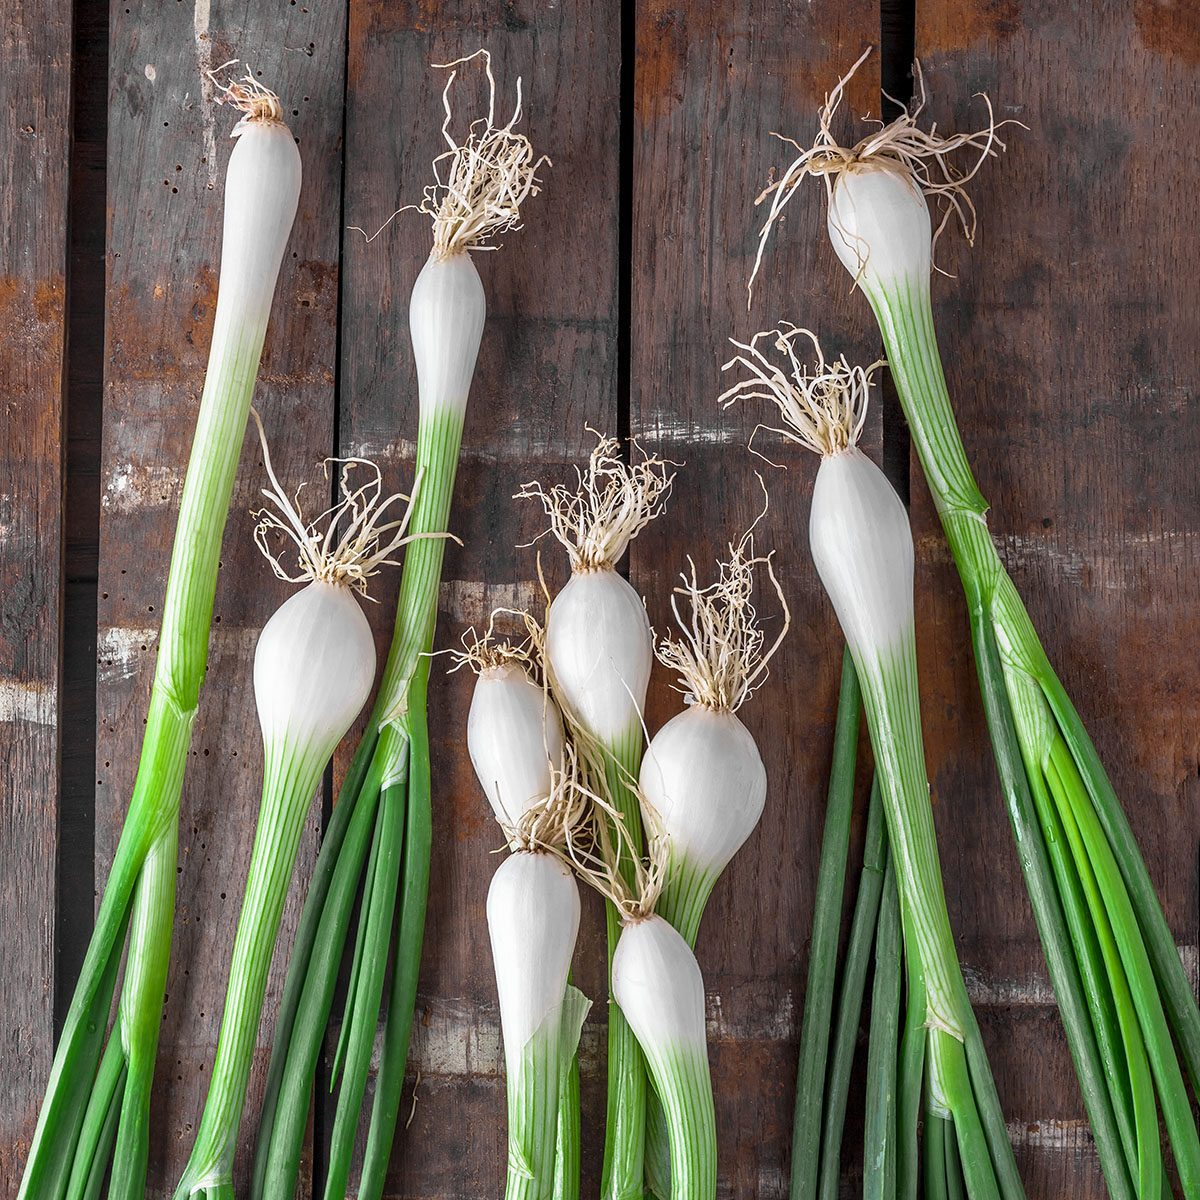 Green onions overhead group on old rustic wooden table in studio